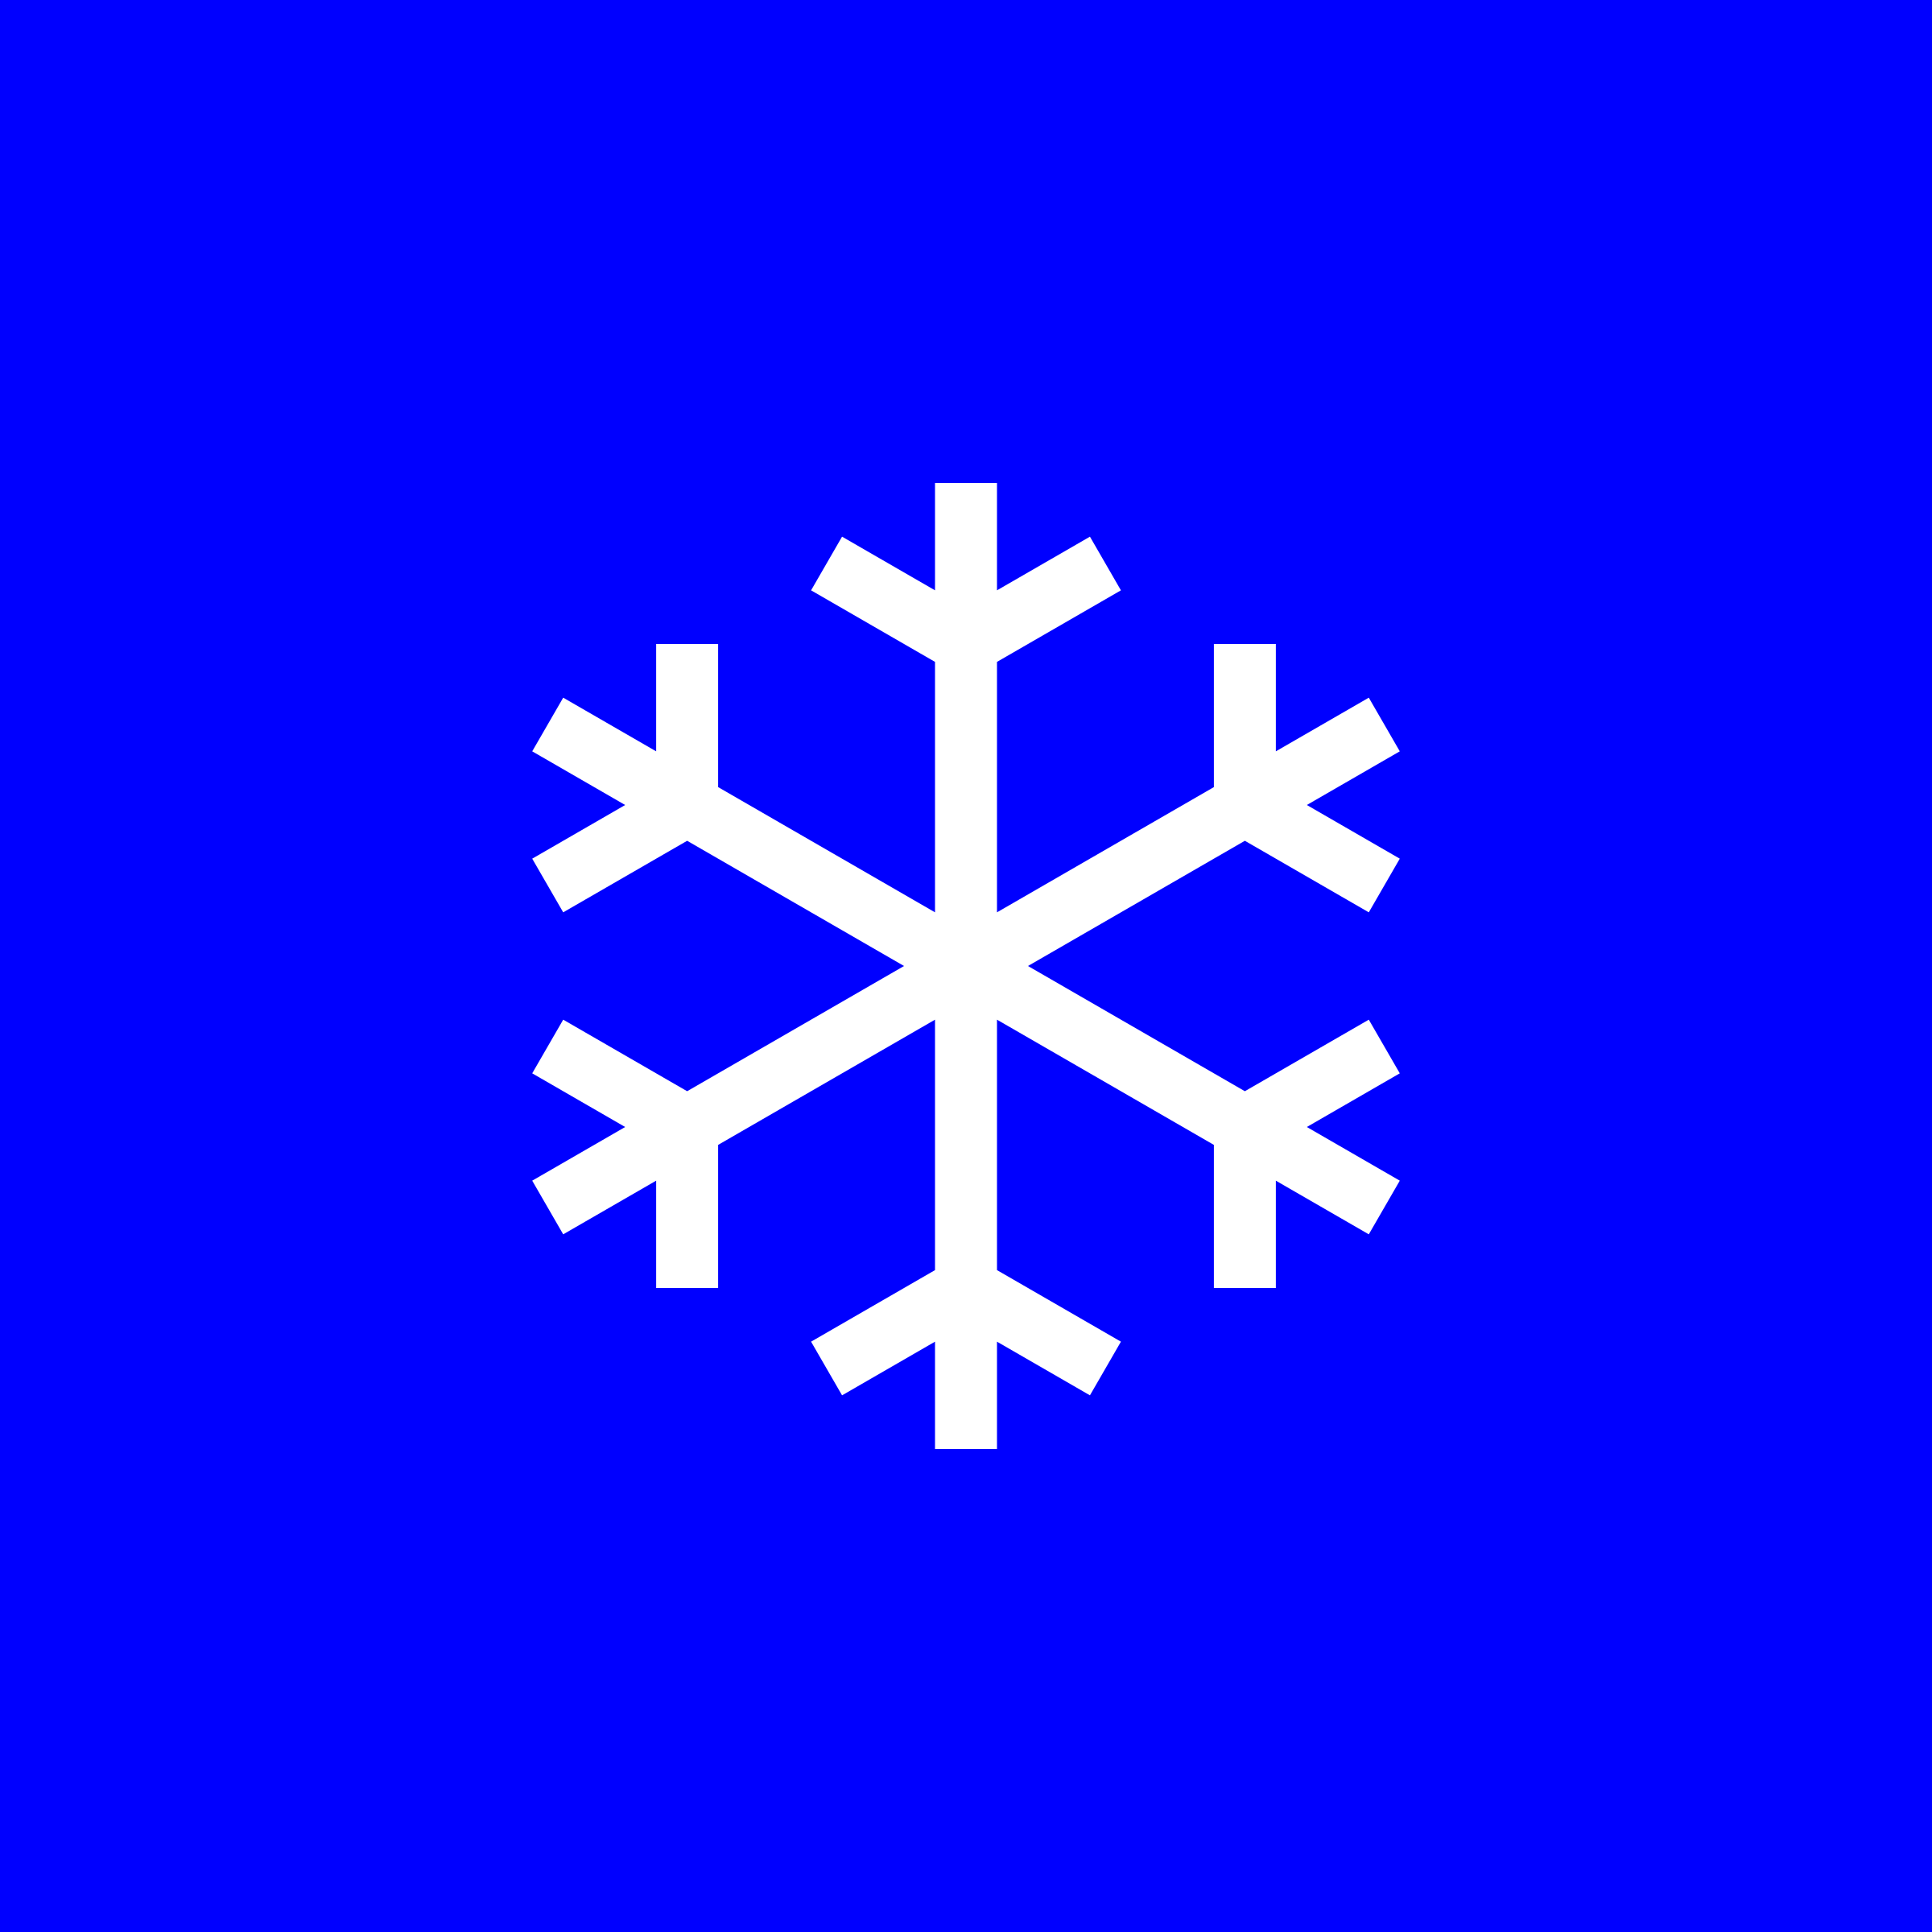 special snowflake by Lazur URH